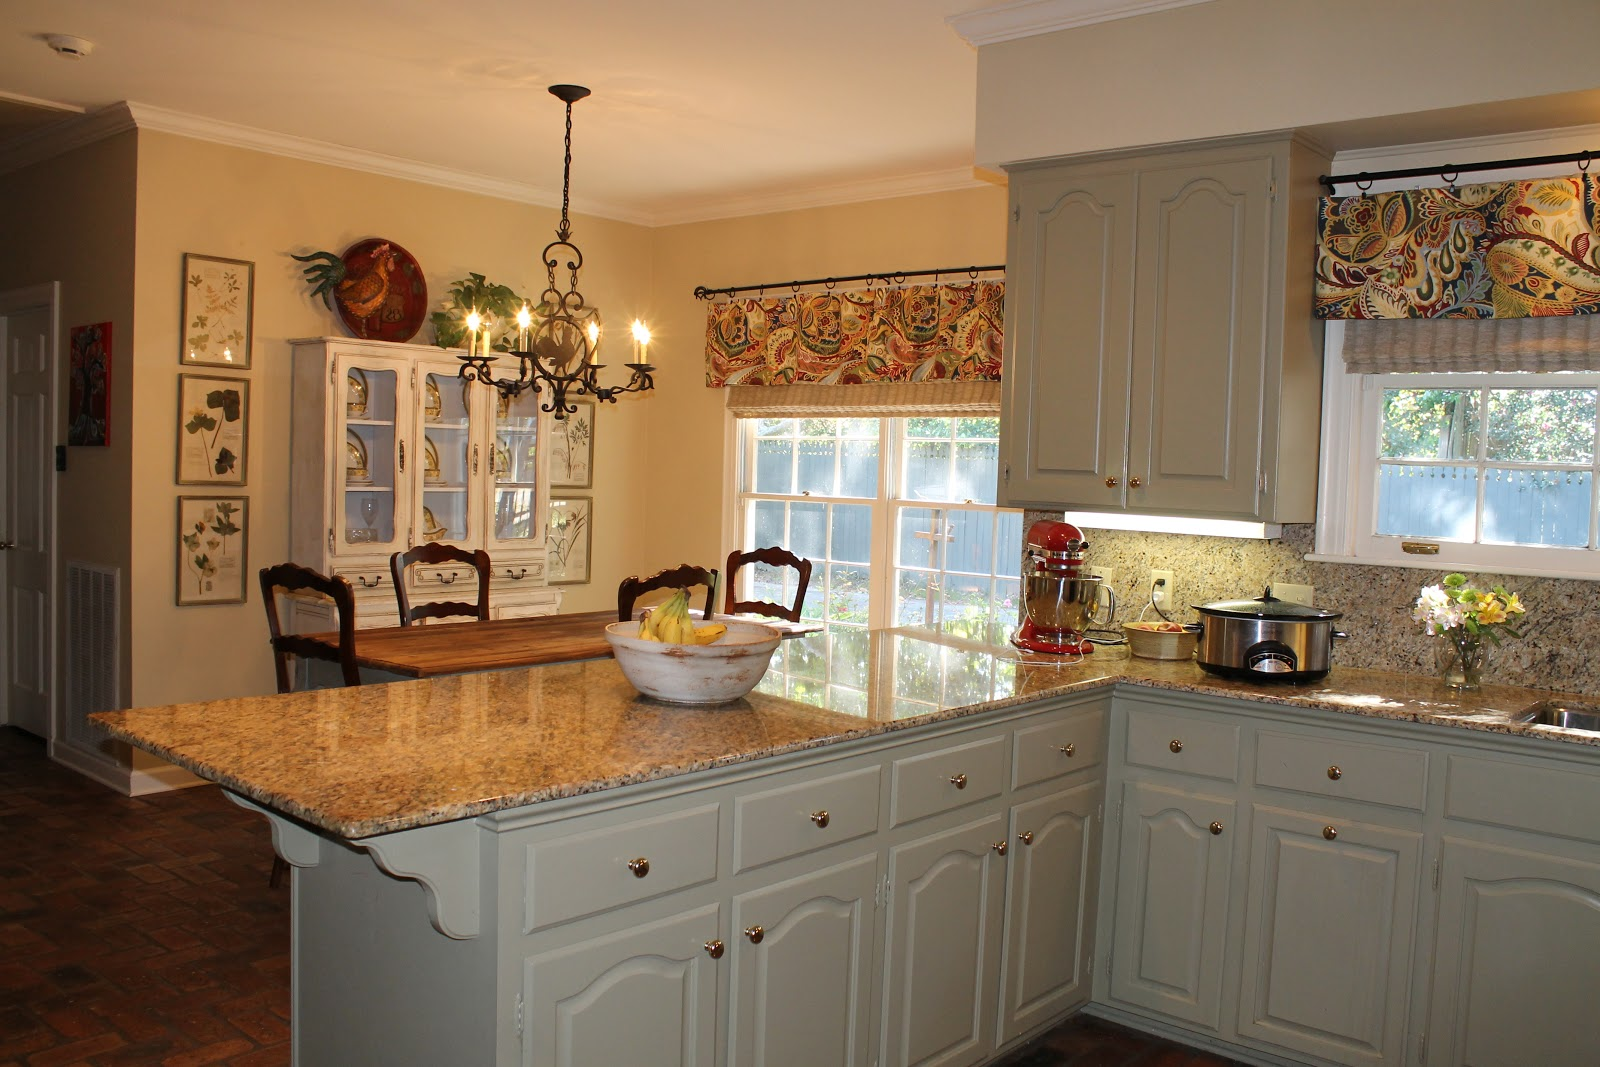 Seamingly Smitten: How to Sew a Kitchen Valance - mini ...